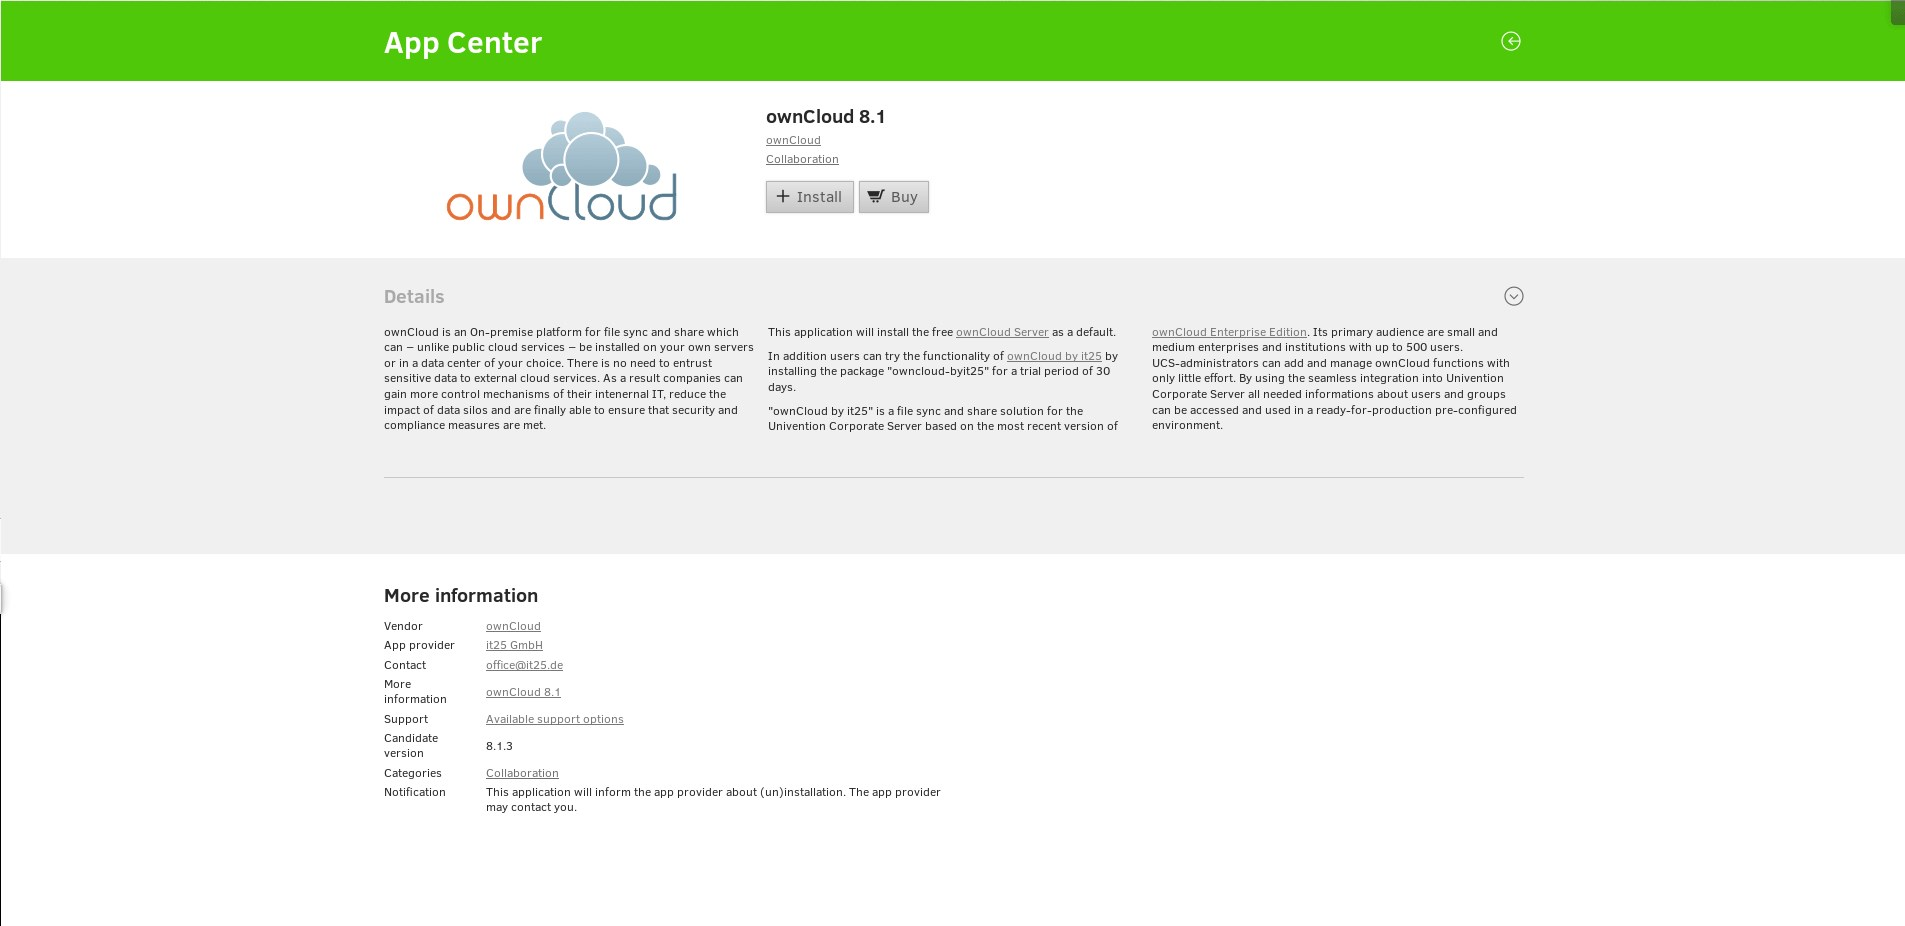 Univention Corporate Server screenshot 2